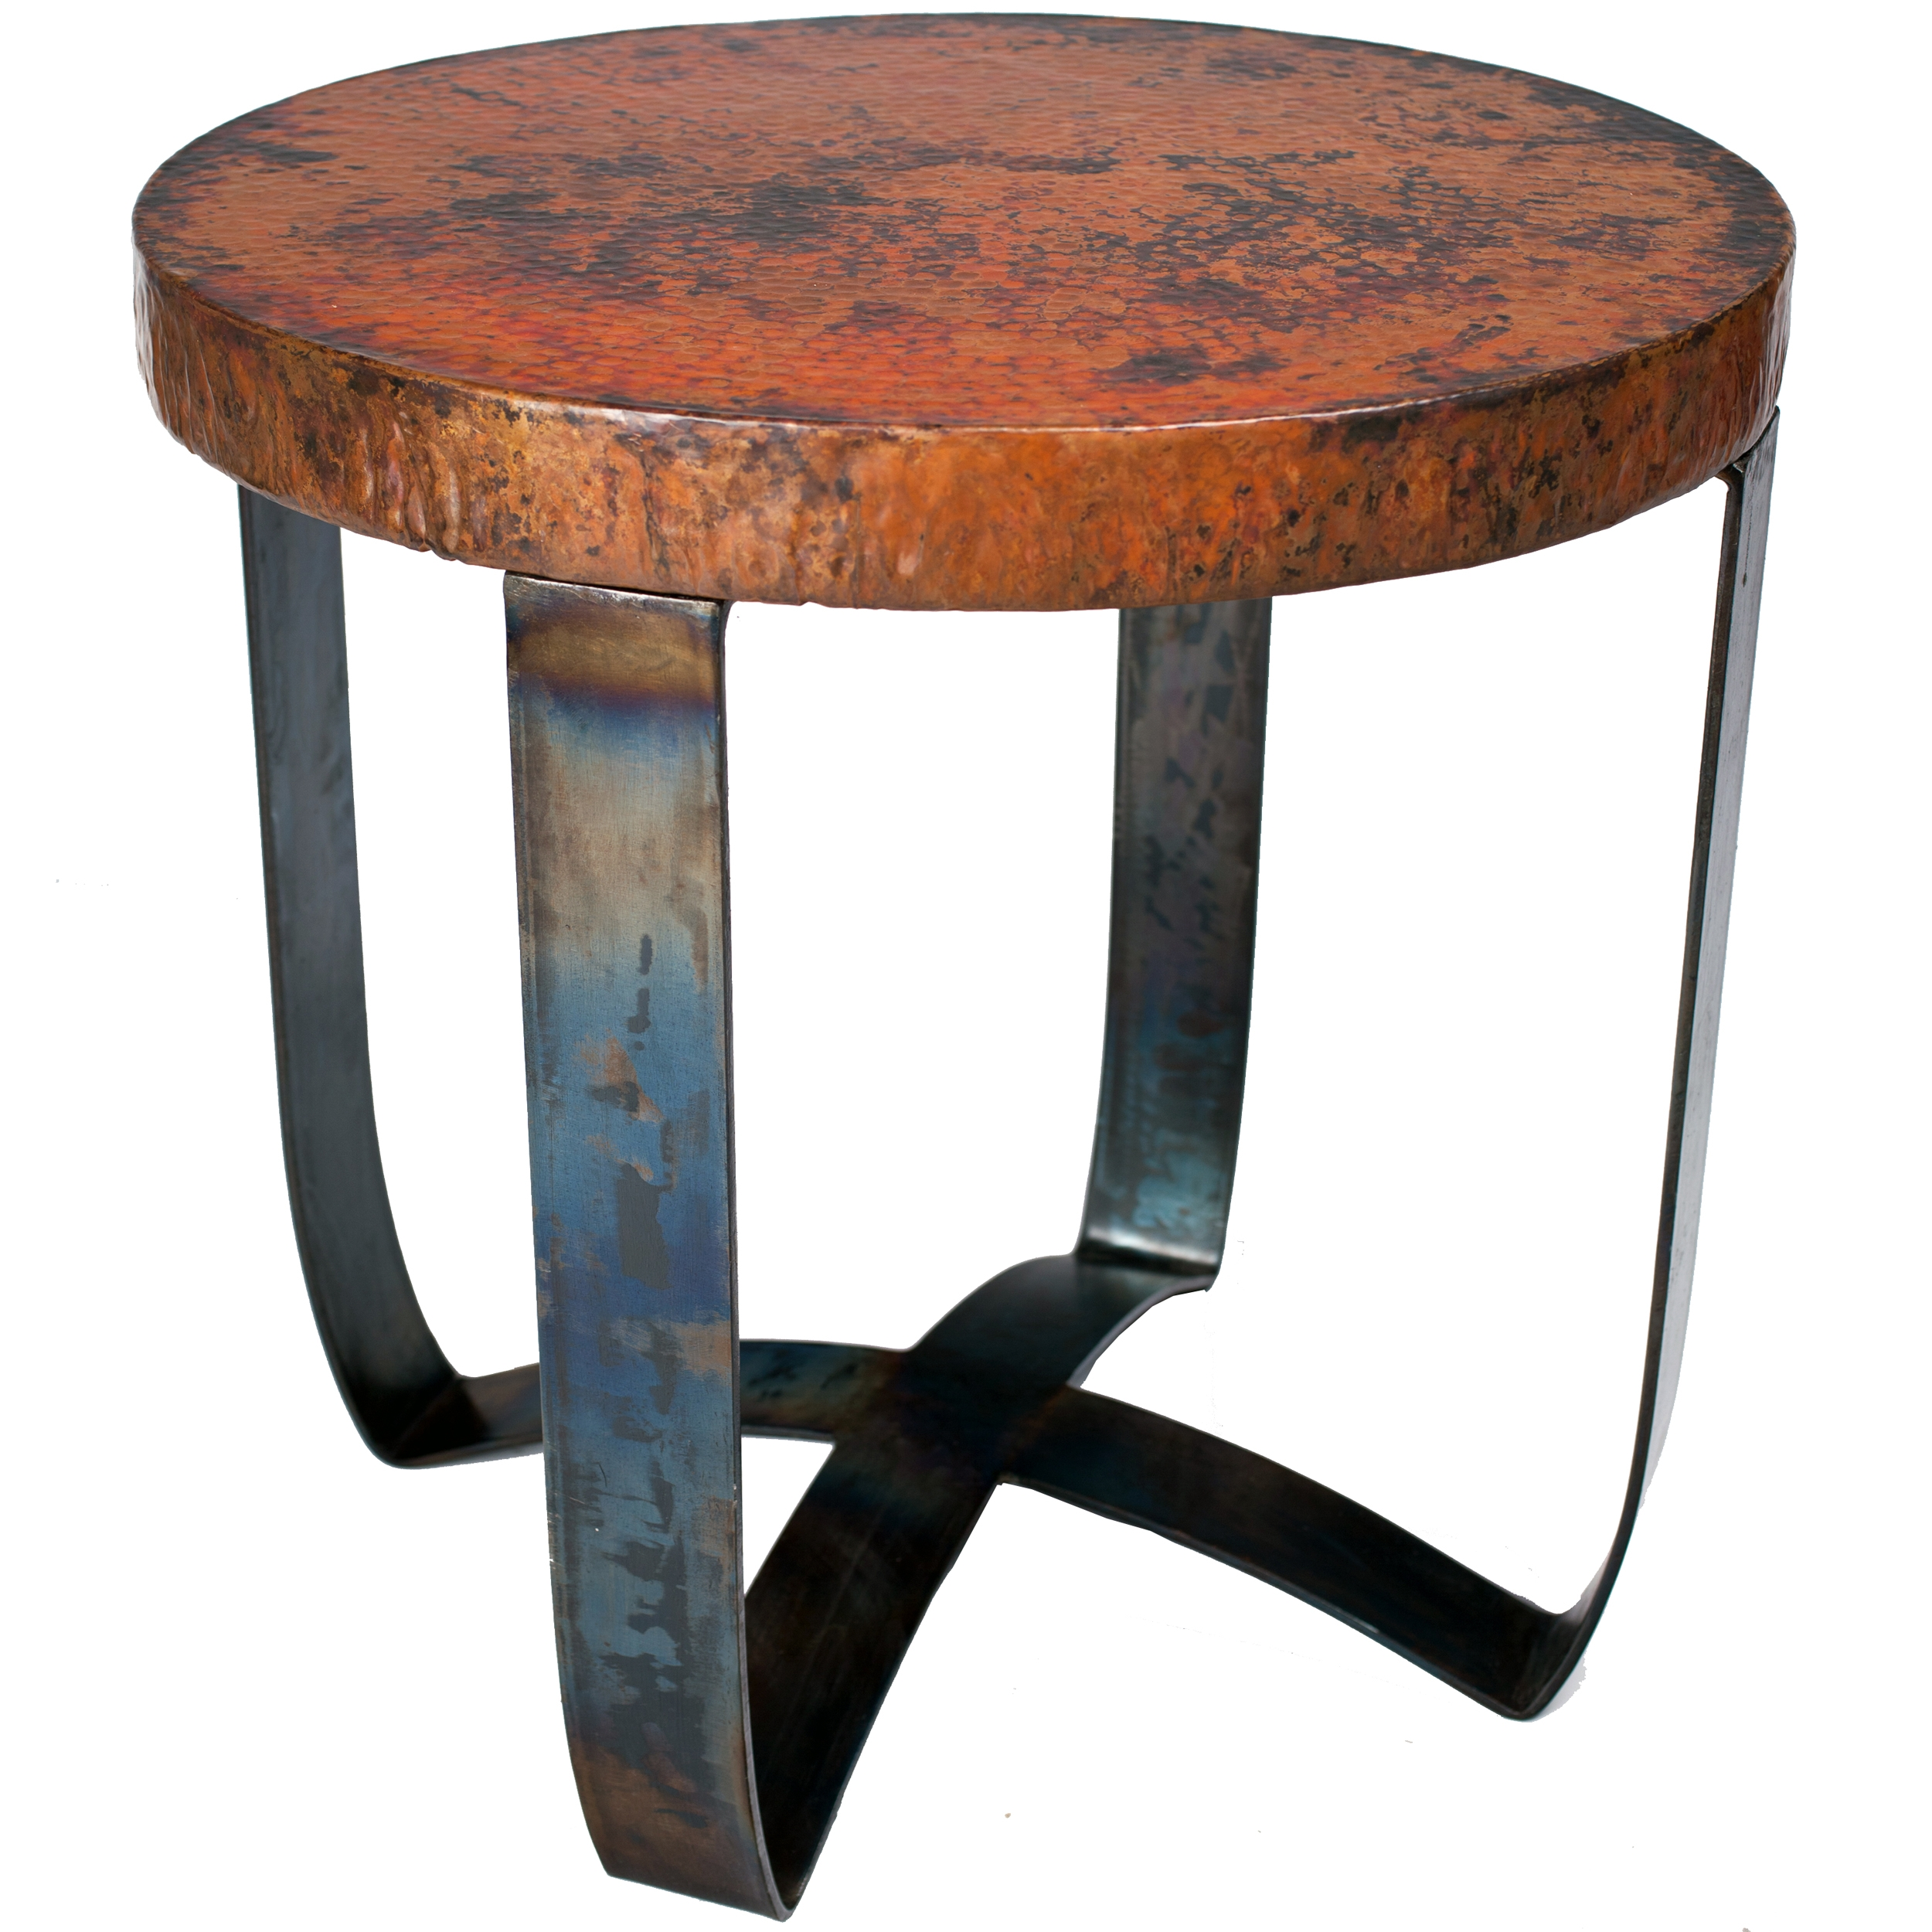 Round Iron Strap End Table With Hammered Copper Top